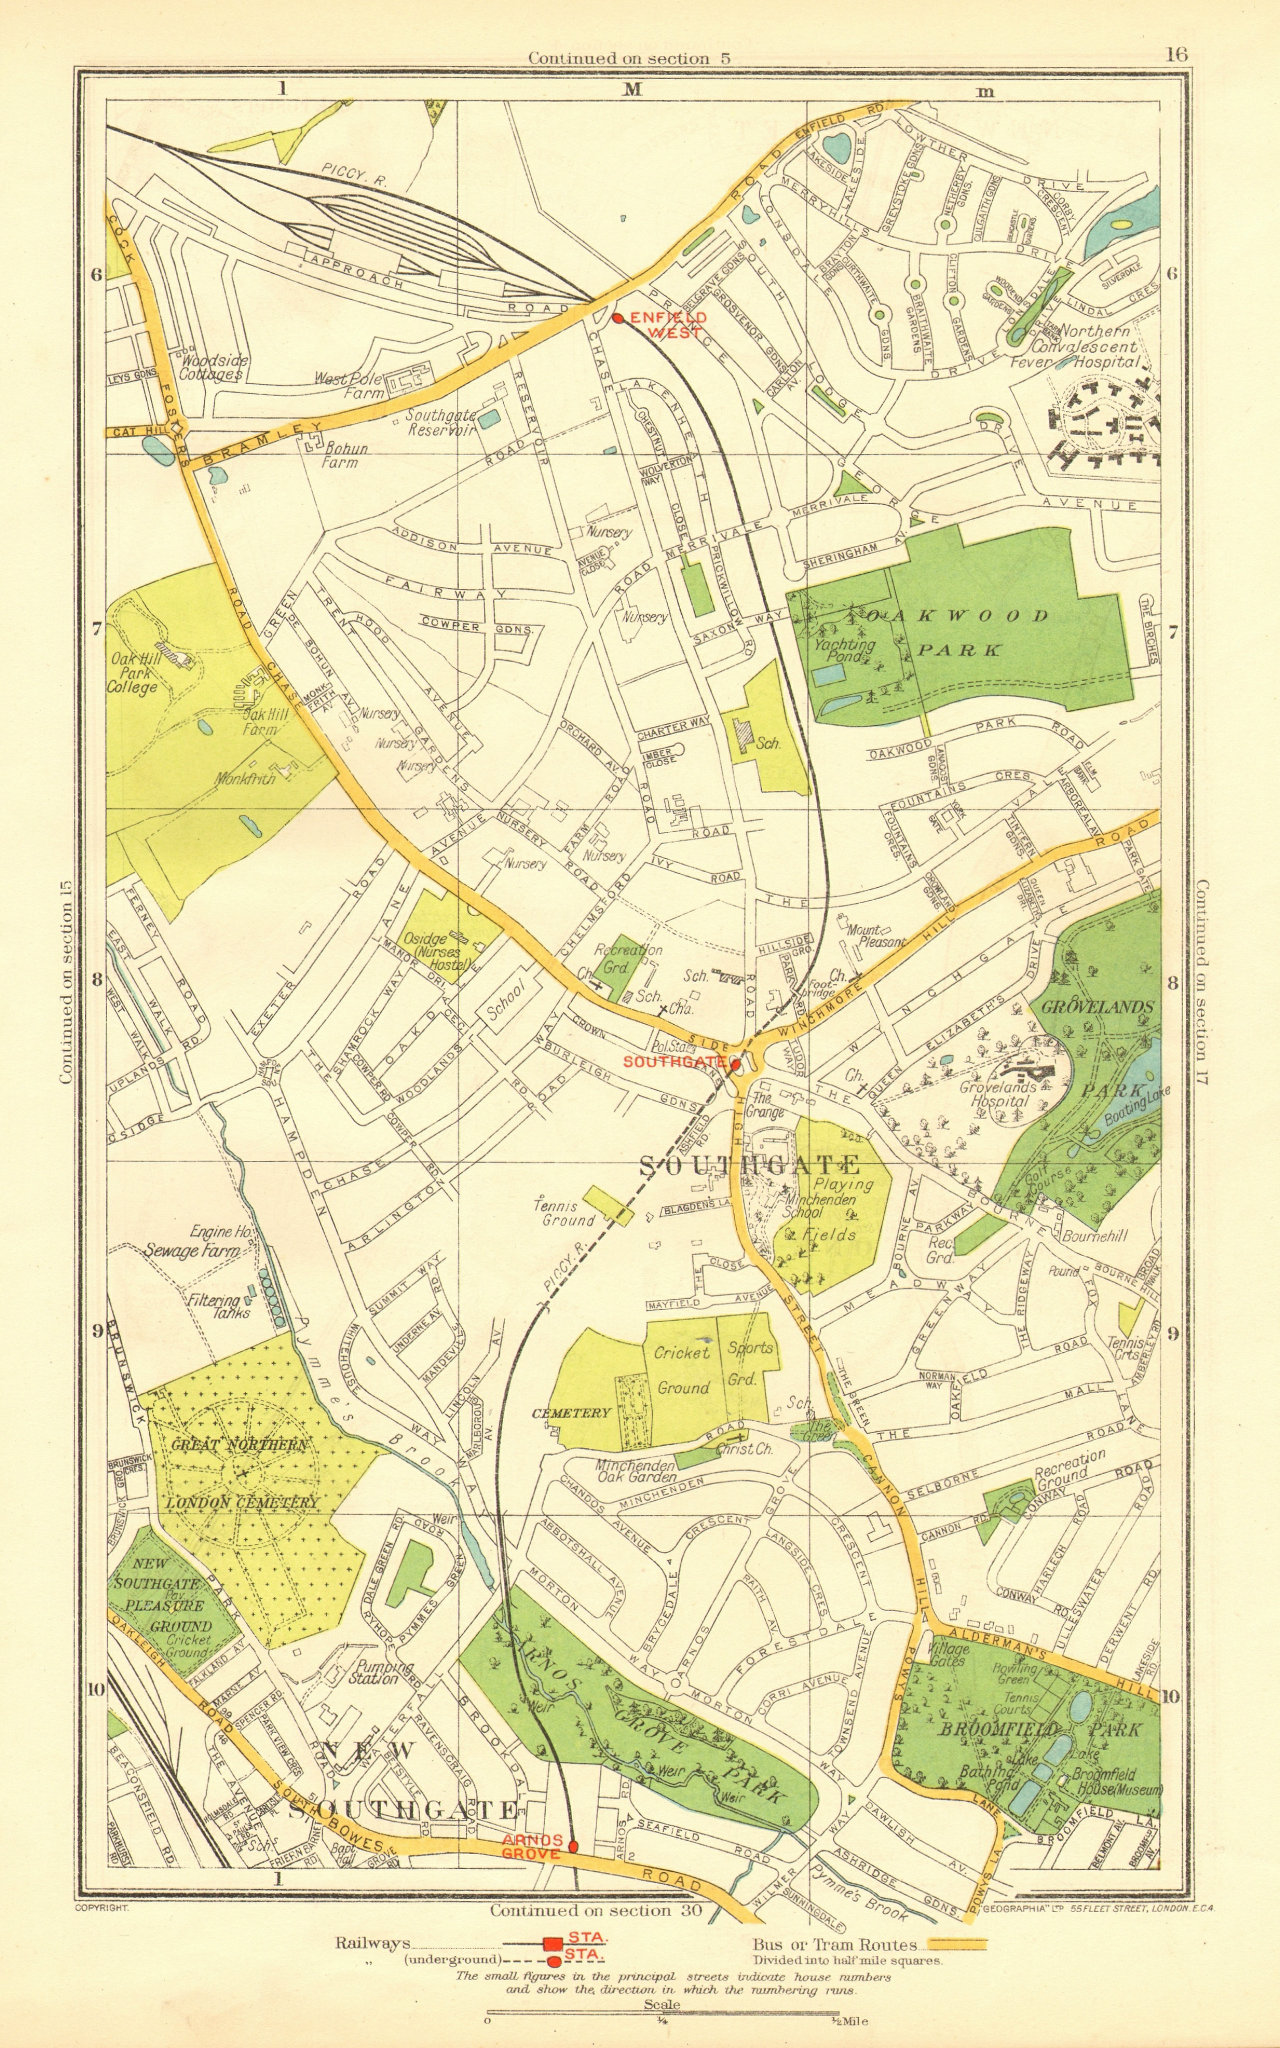 Associate Product LONDON. Southgate New Southgate Arnos Grove West Enfield 1937 old vintage map